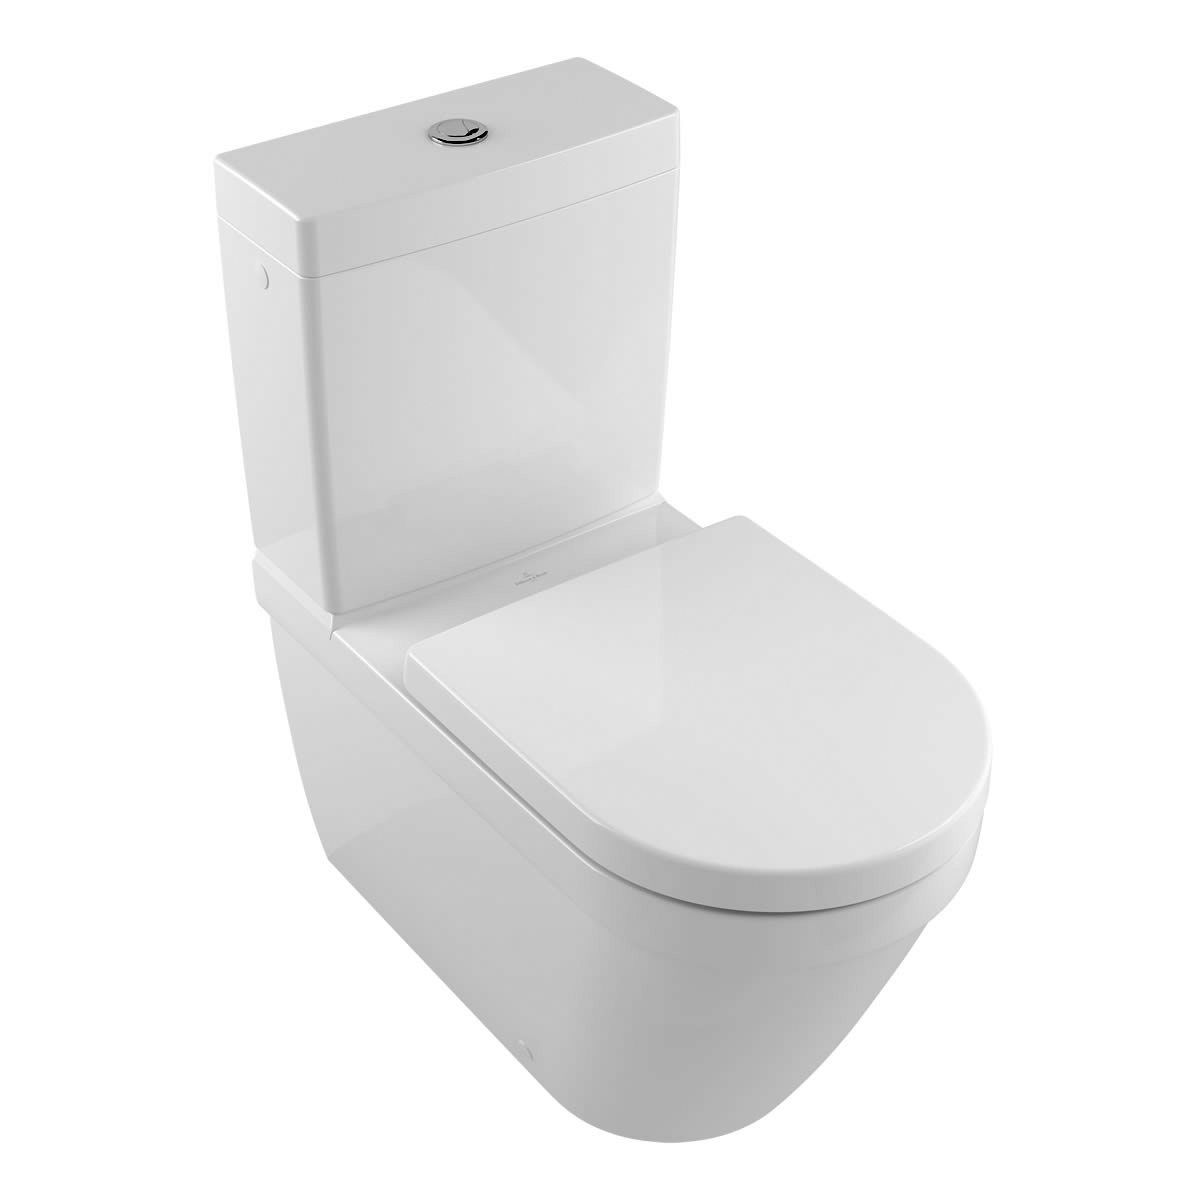 Villeroy & Boch Architectura Rimless Close Coupled Toilet